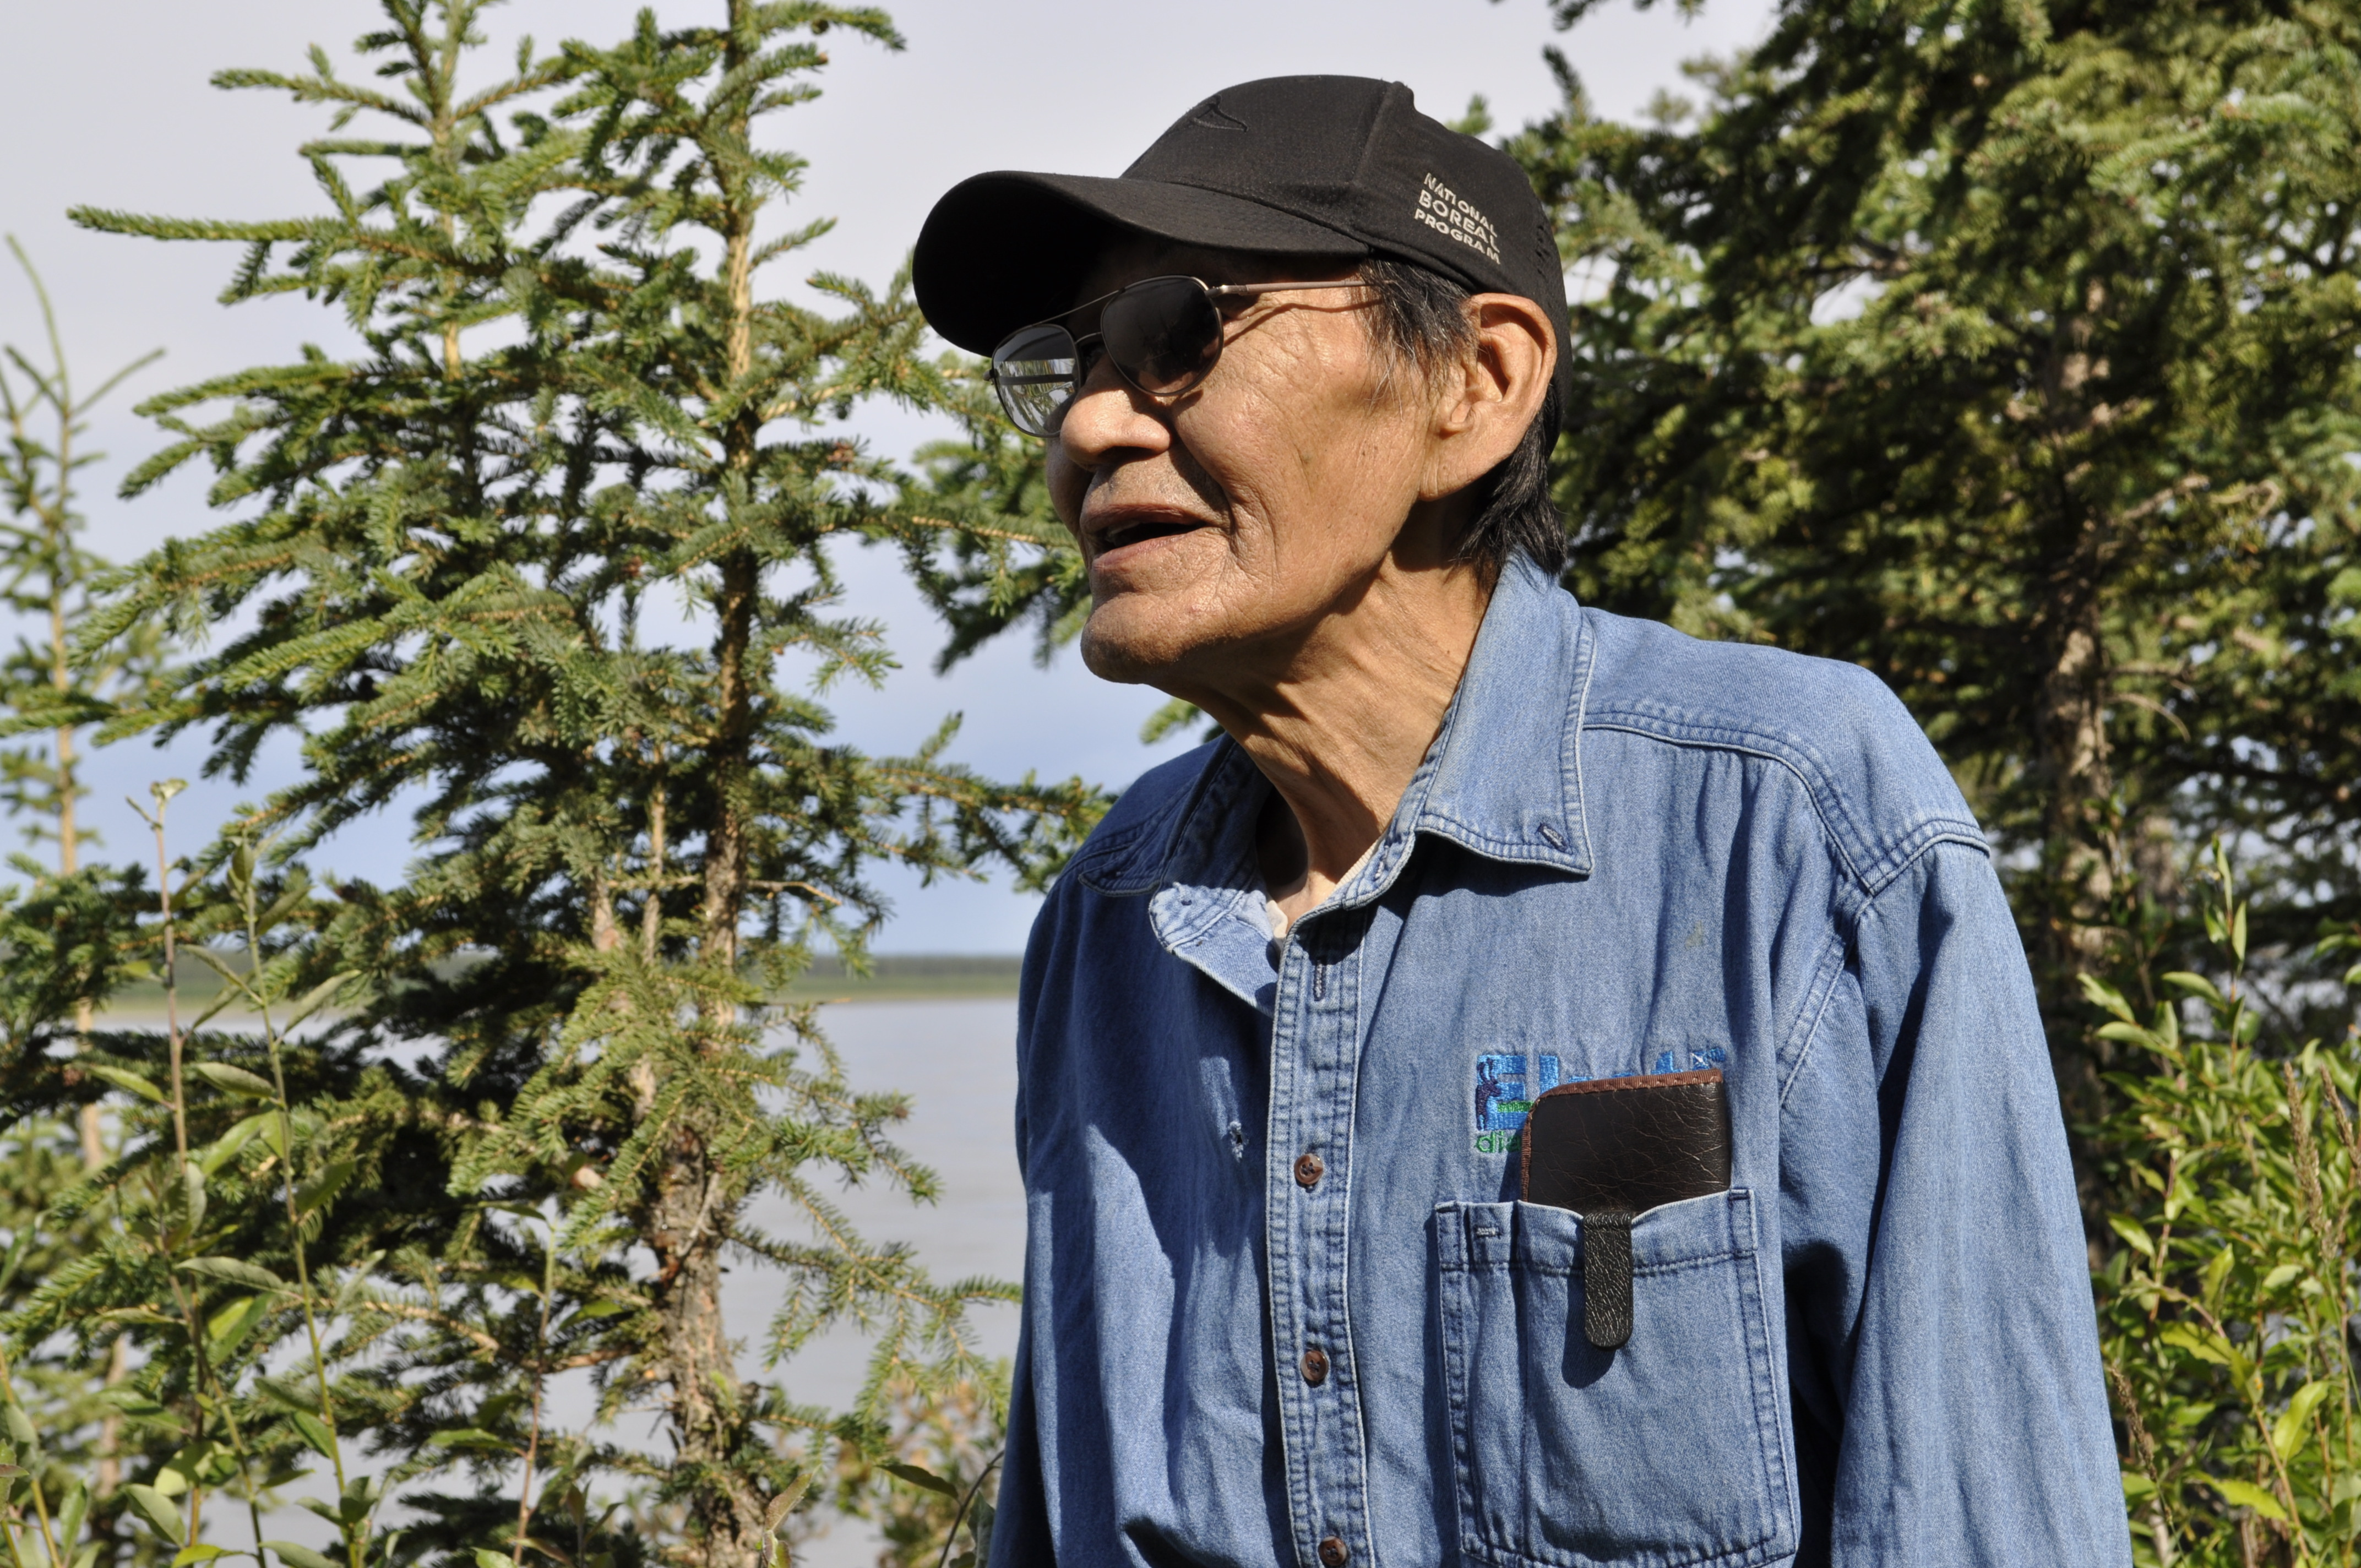 Frank T'seleie stands in his backyard, where he's encouraging plants to grow. He hopes that can prevent erosion on the shoreline. (Alex Brockman/CBC)